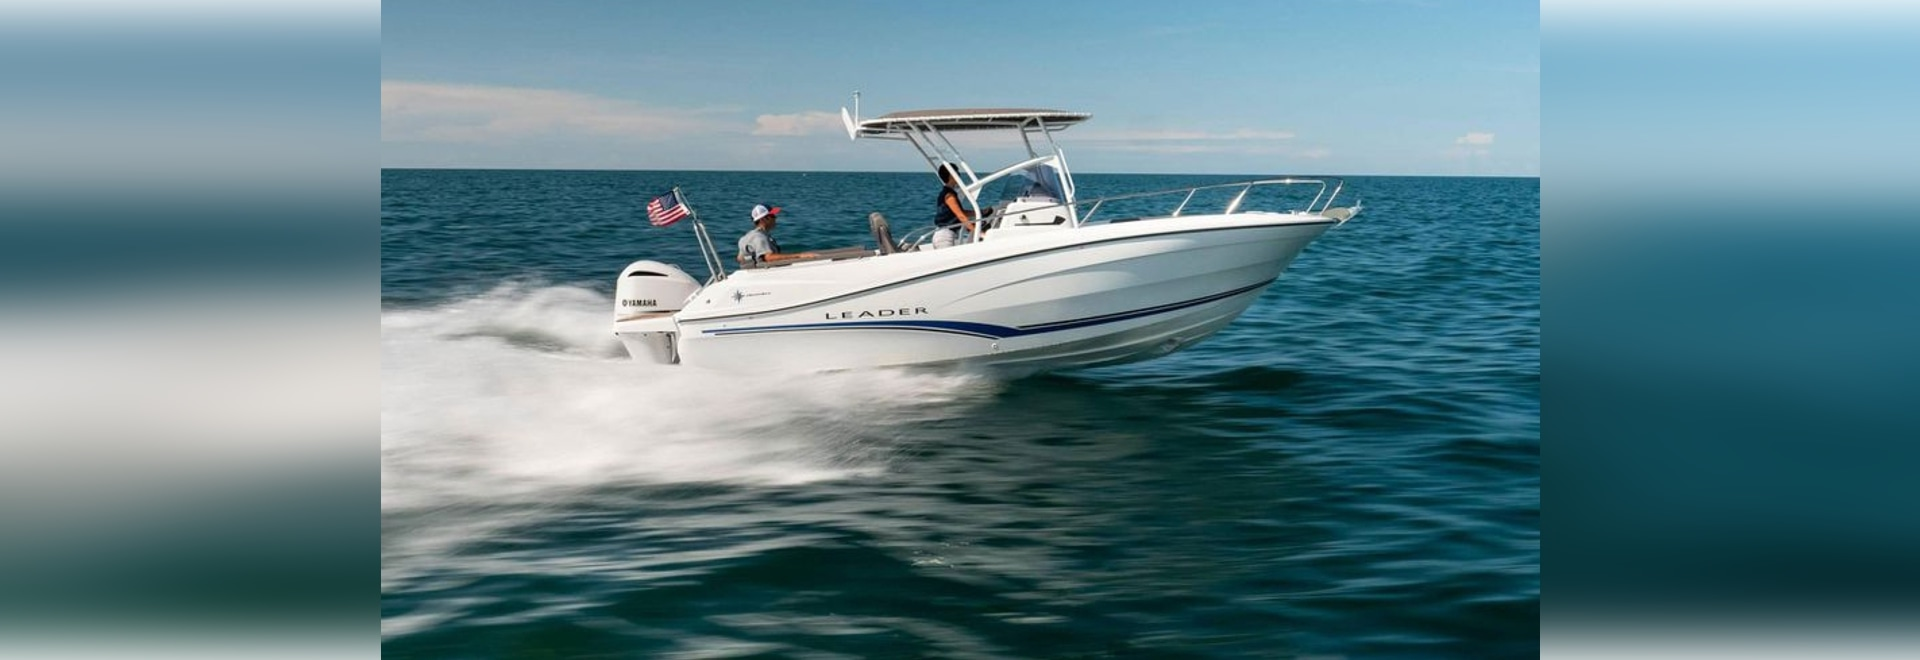 """LOA: 24'4"""" 